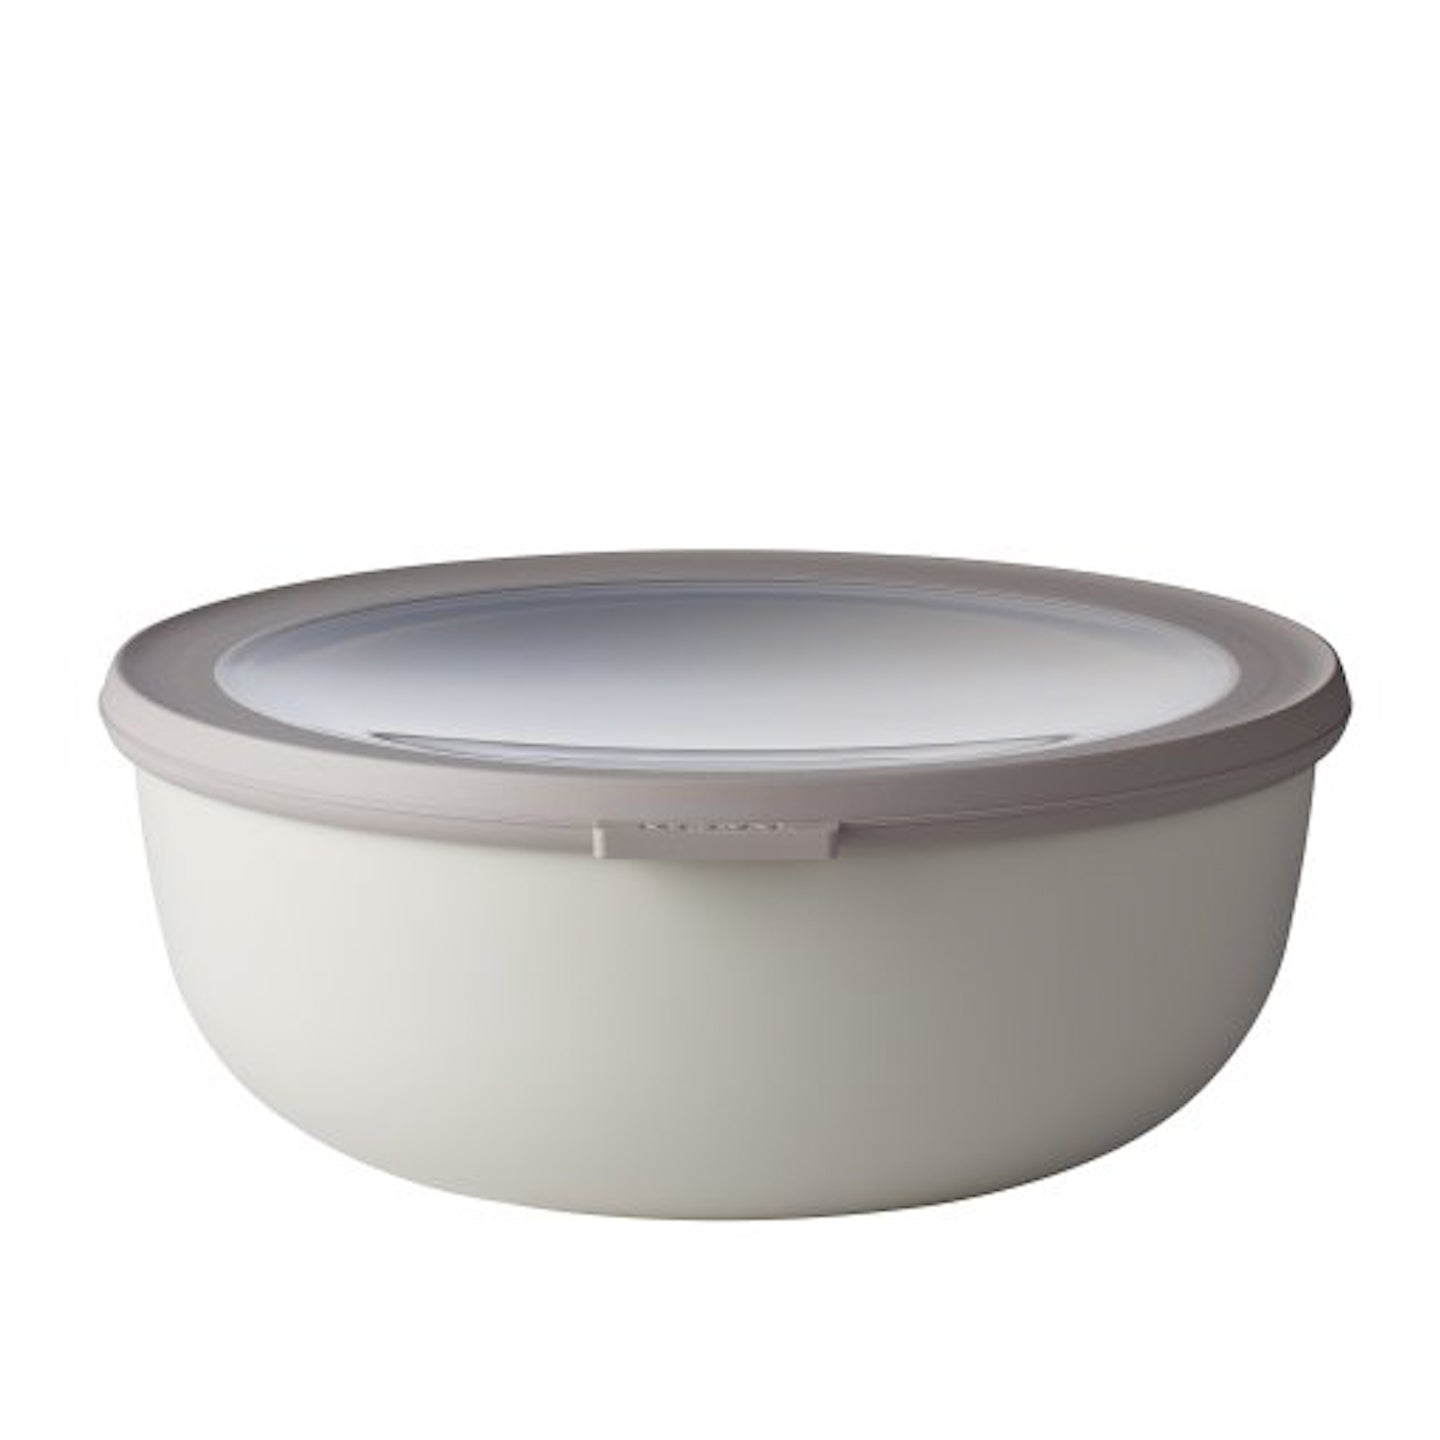 Mepal Cirqula Mixing Bowl with Lid / Nordic White / 2250ml